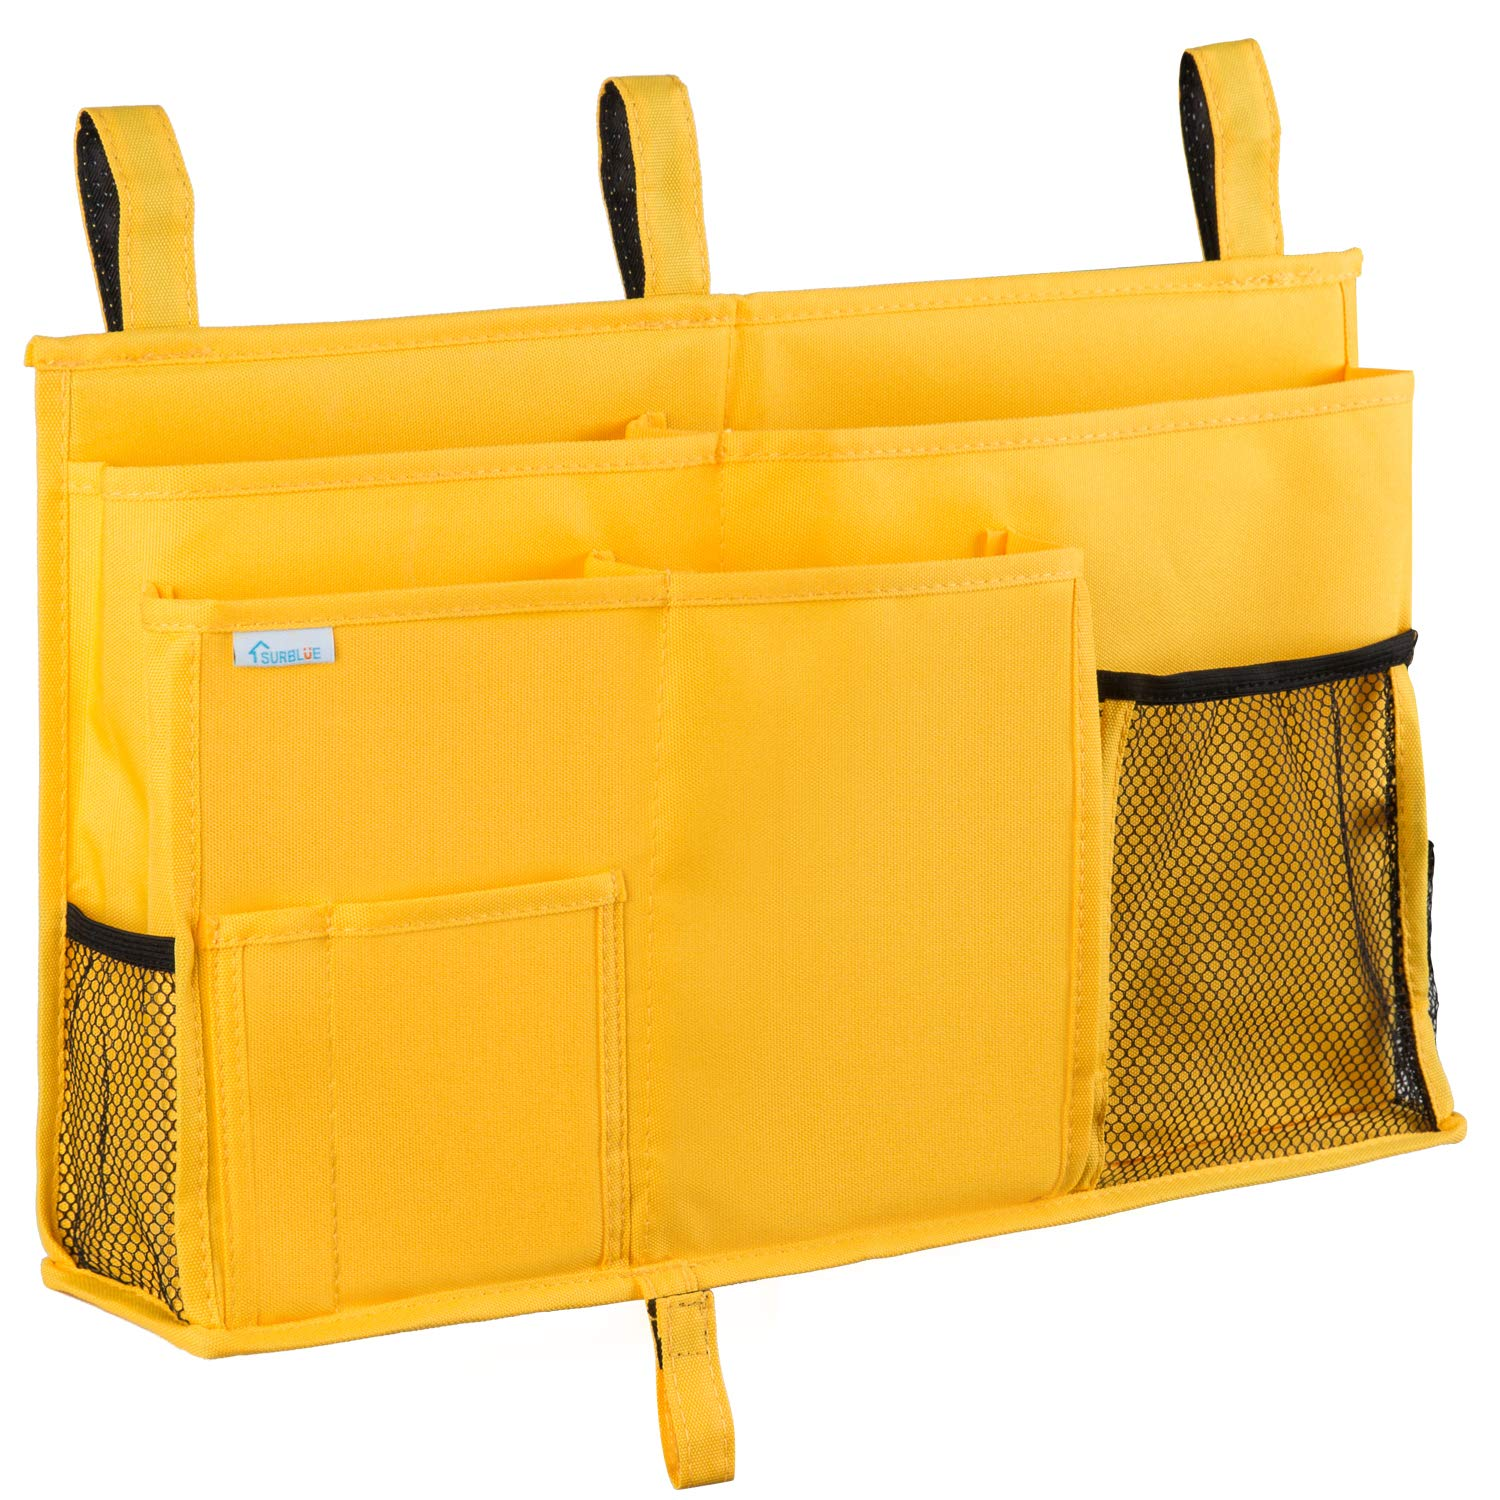 Surblue Bedside Caddy Hanging Bed Organizer Storage Bag Pocket for Bunk and Hospital Beds, College Dorm Rooms Baby Bed Rails,Camp (8 Pockets),Yellow